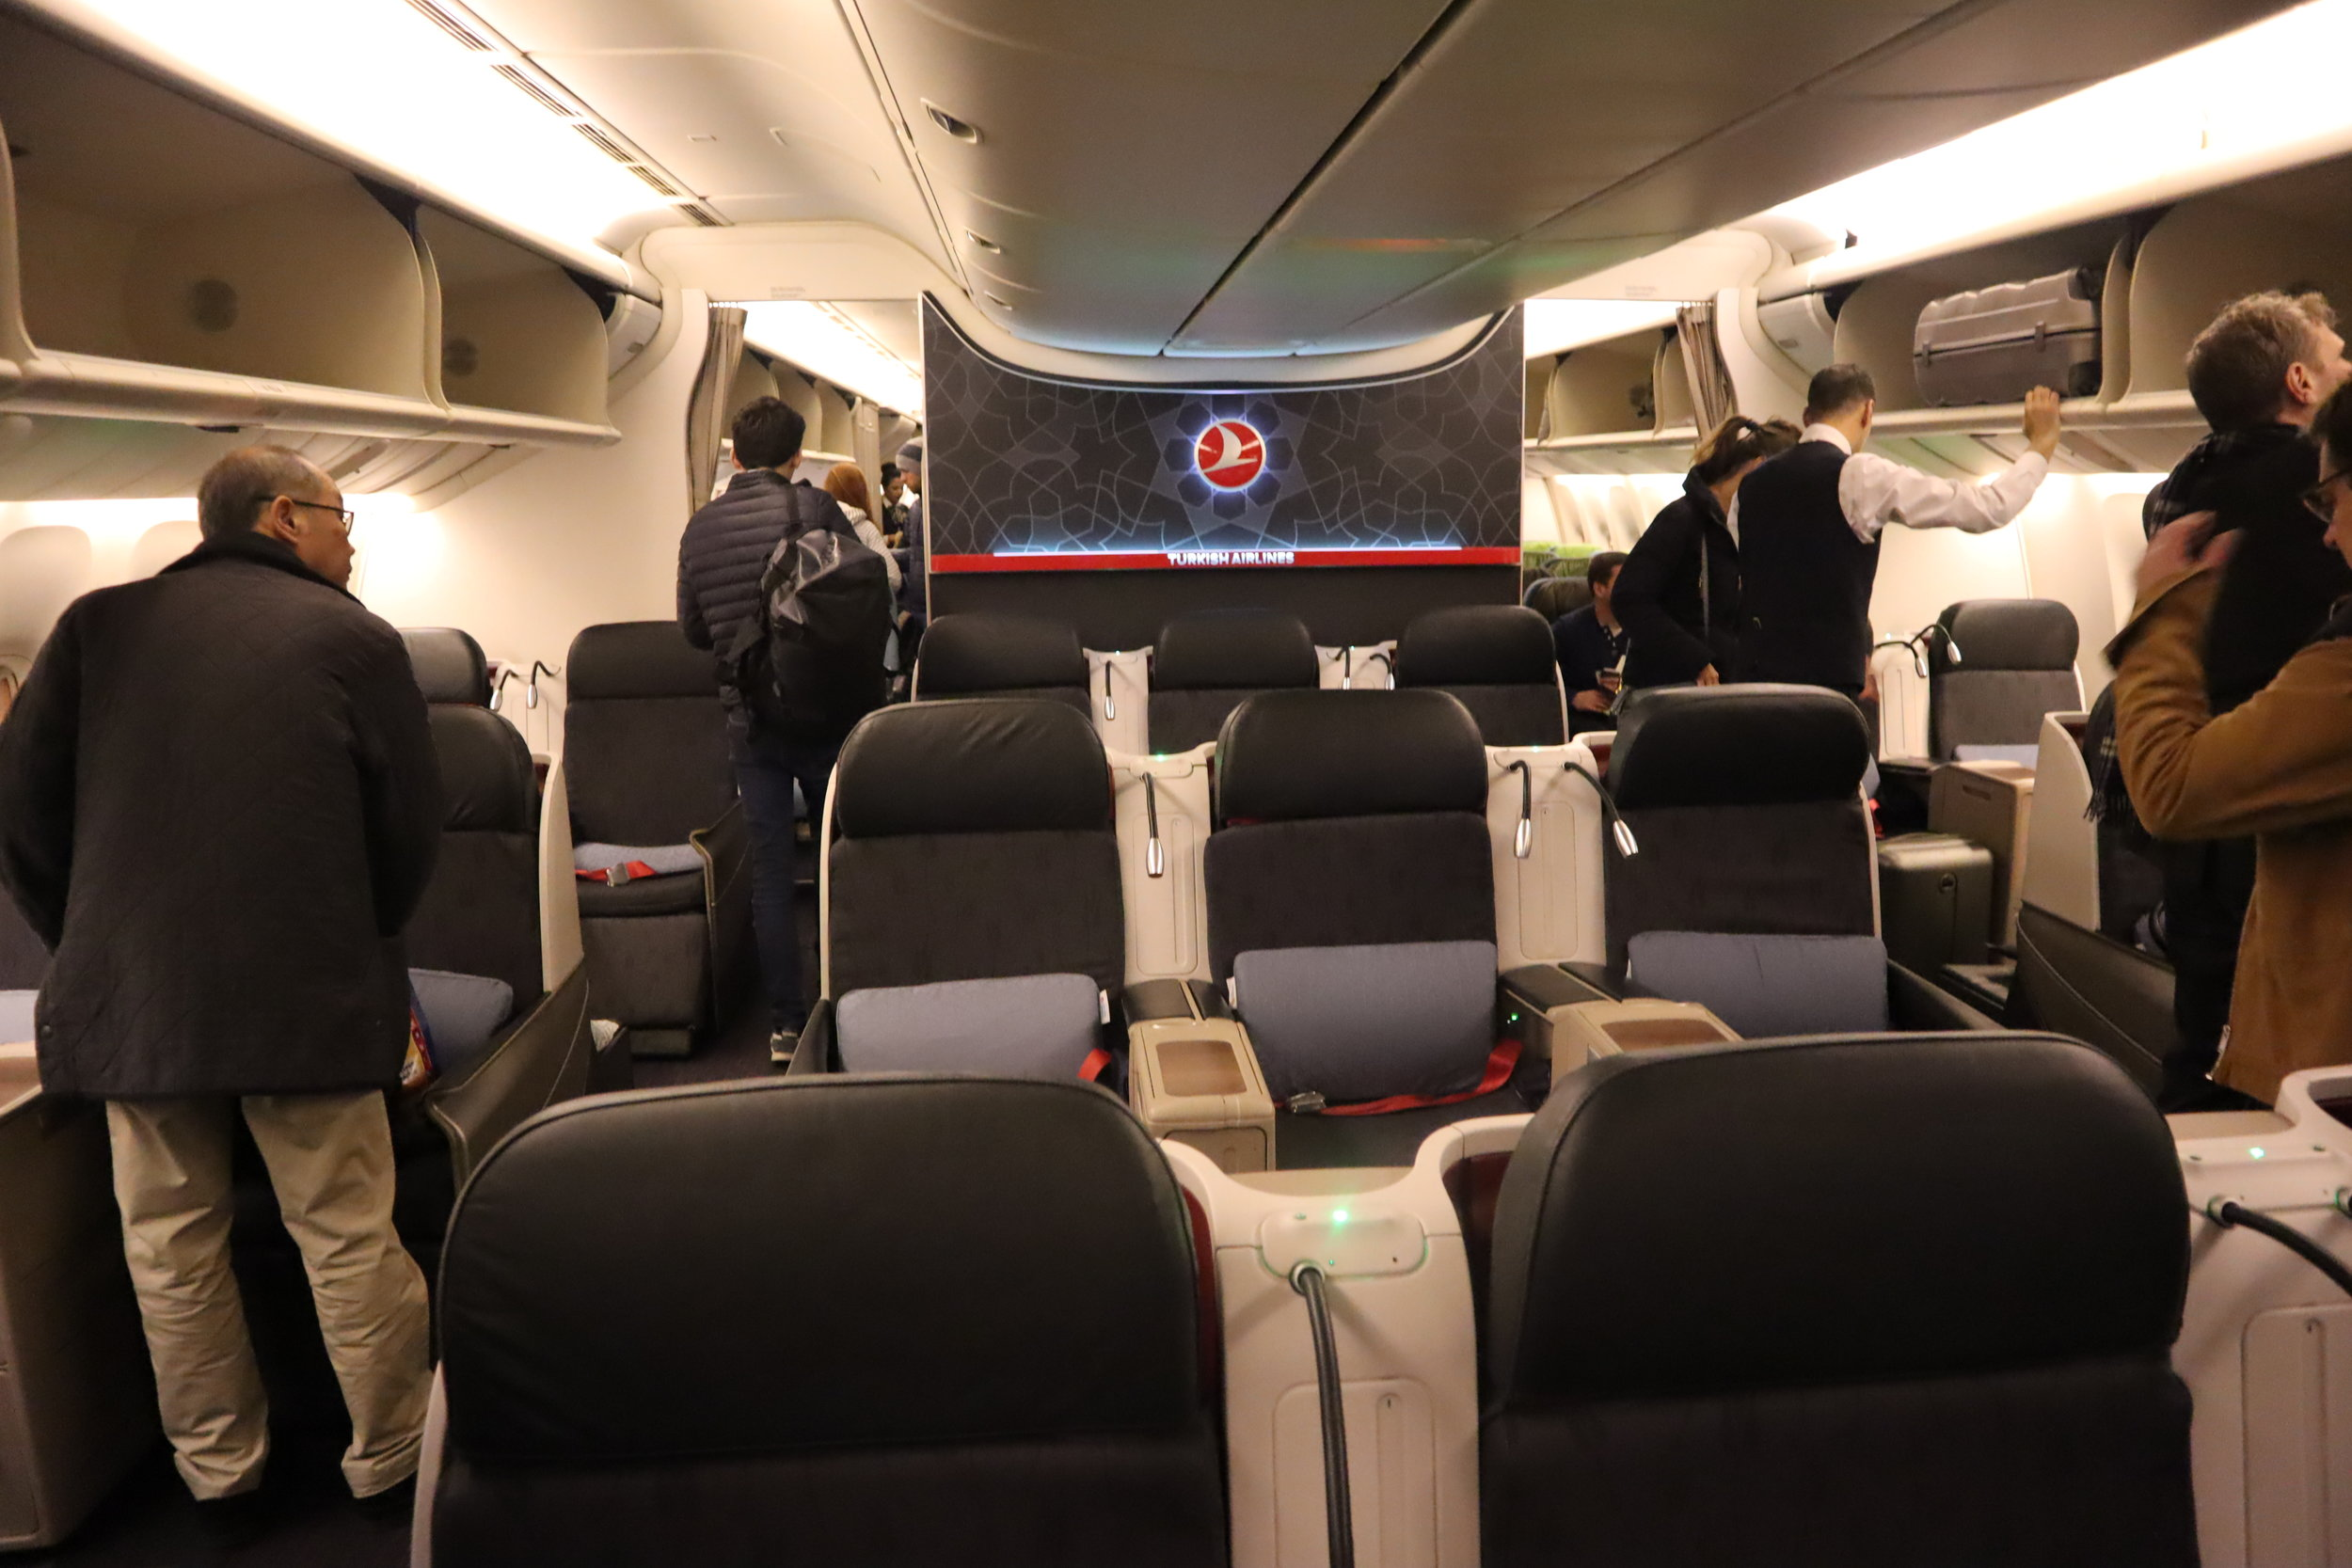 Turkish Airlines 777 business class – Cabin